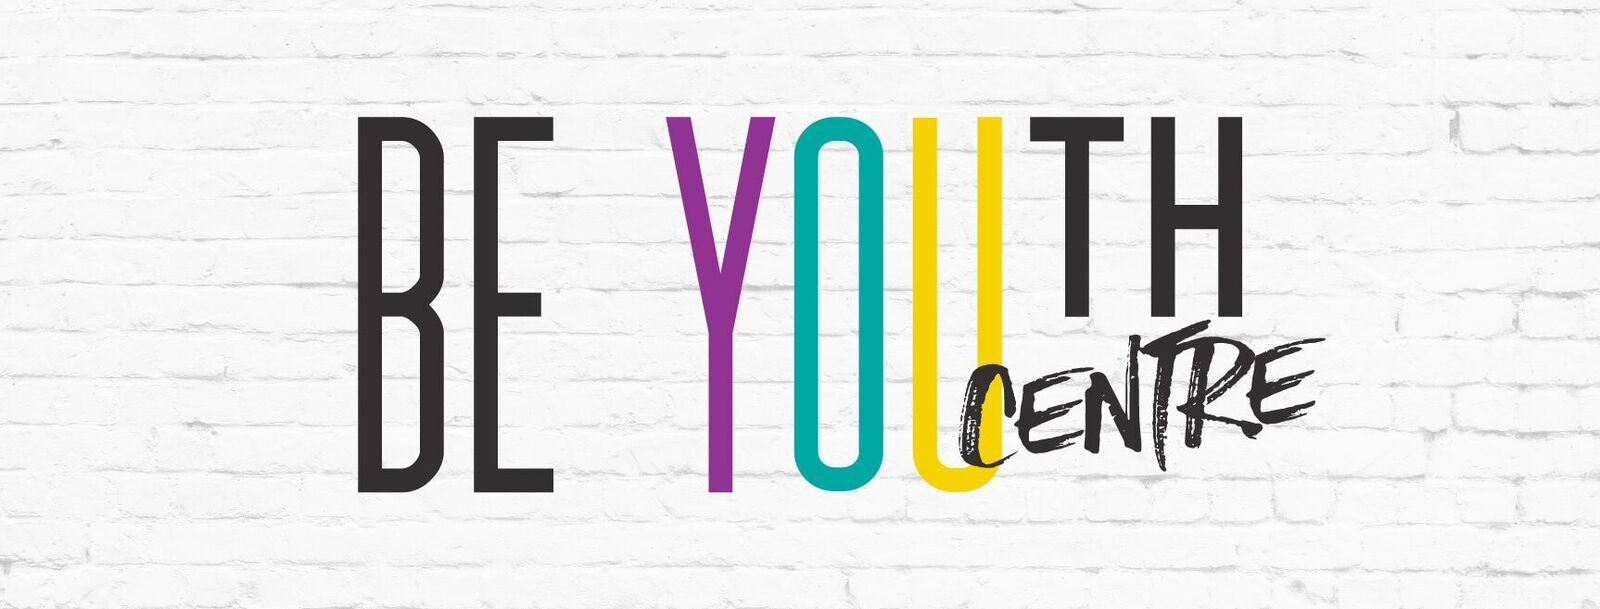 Be Youth Centre_2018_05